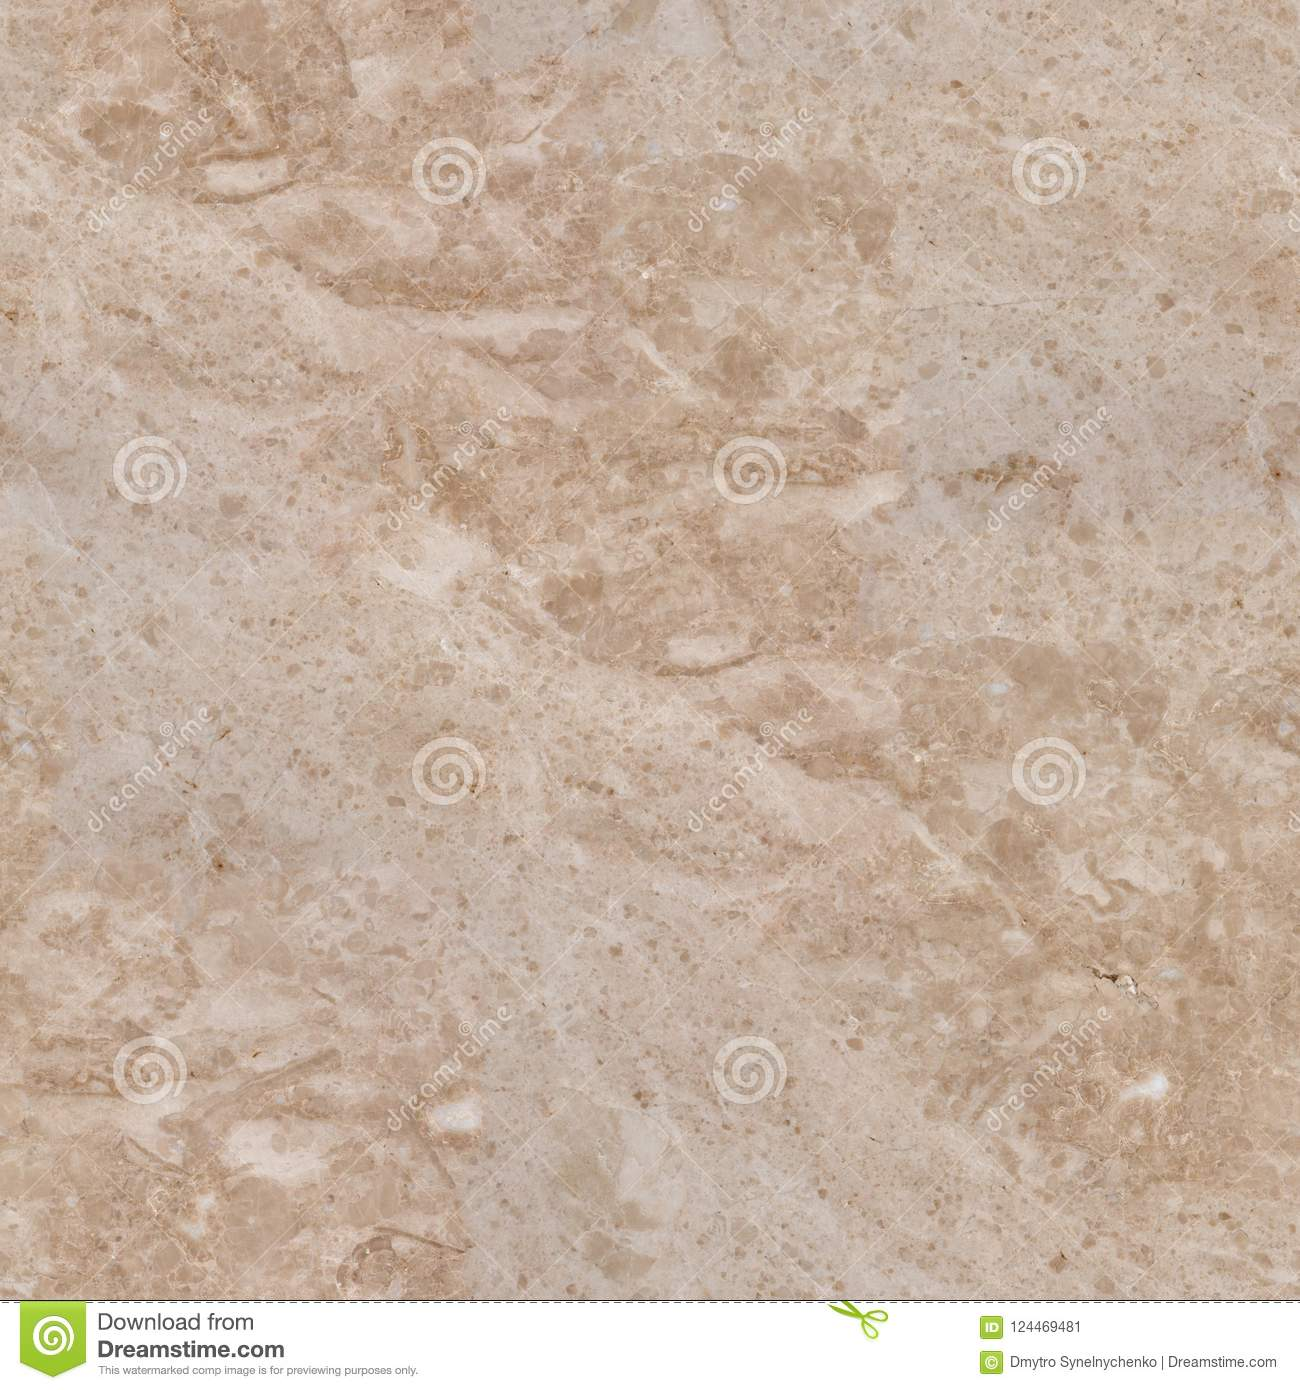 Download Light Beige Marble Texture With Gentle Tracery Seamless Square Stock Image